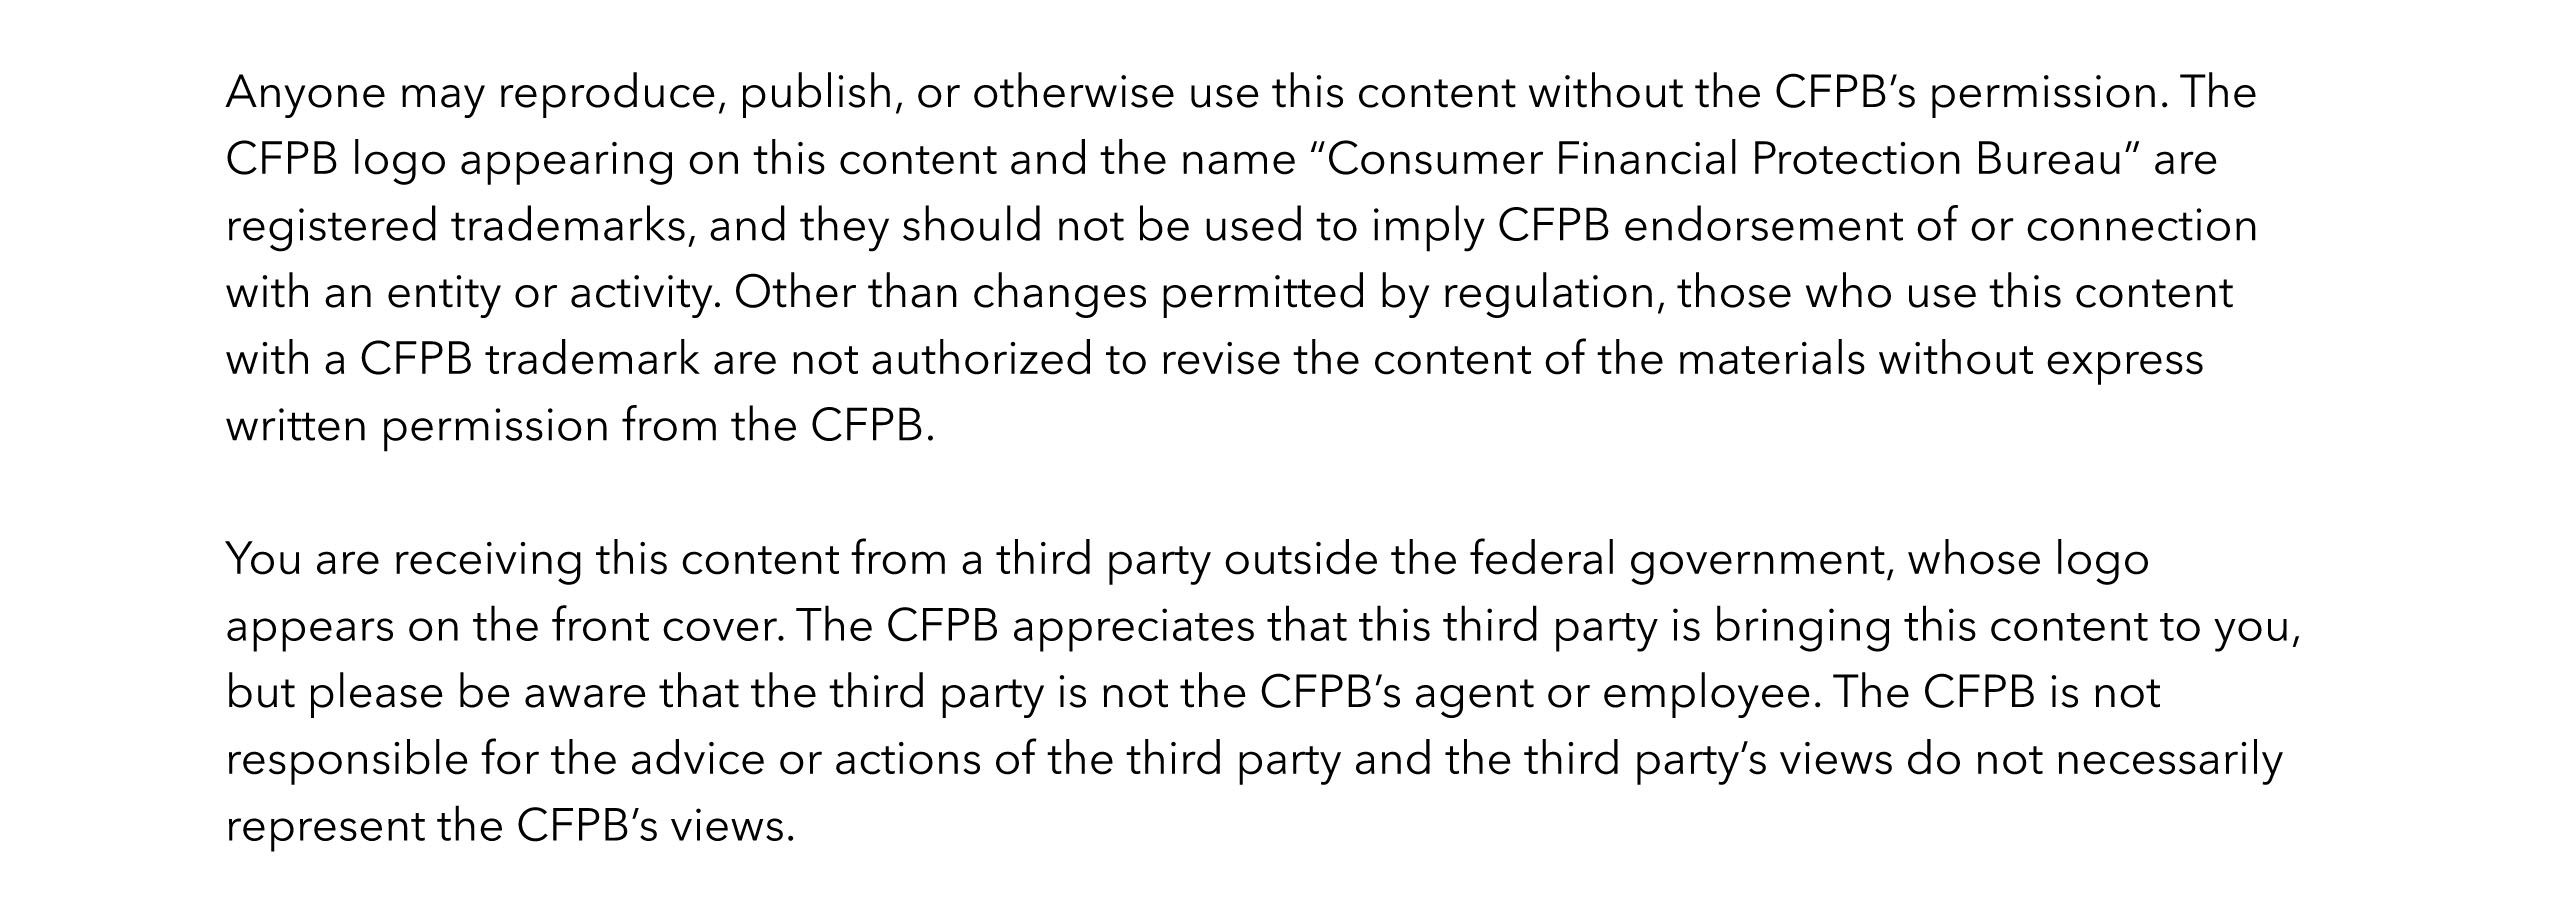 learn more consumer financial protection bureau